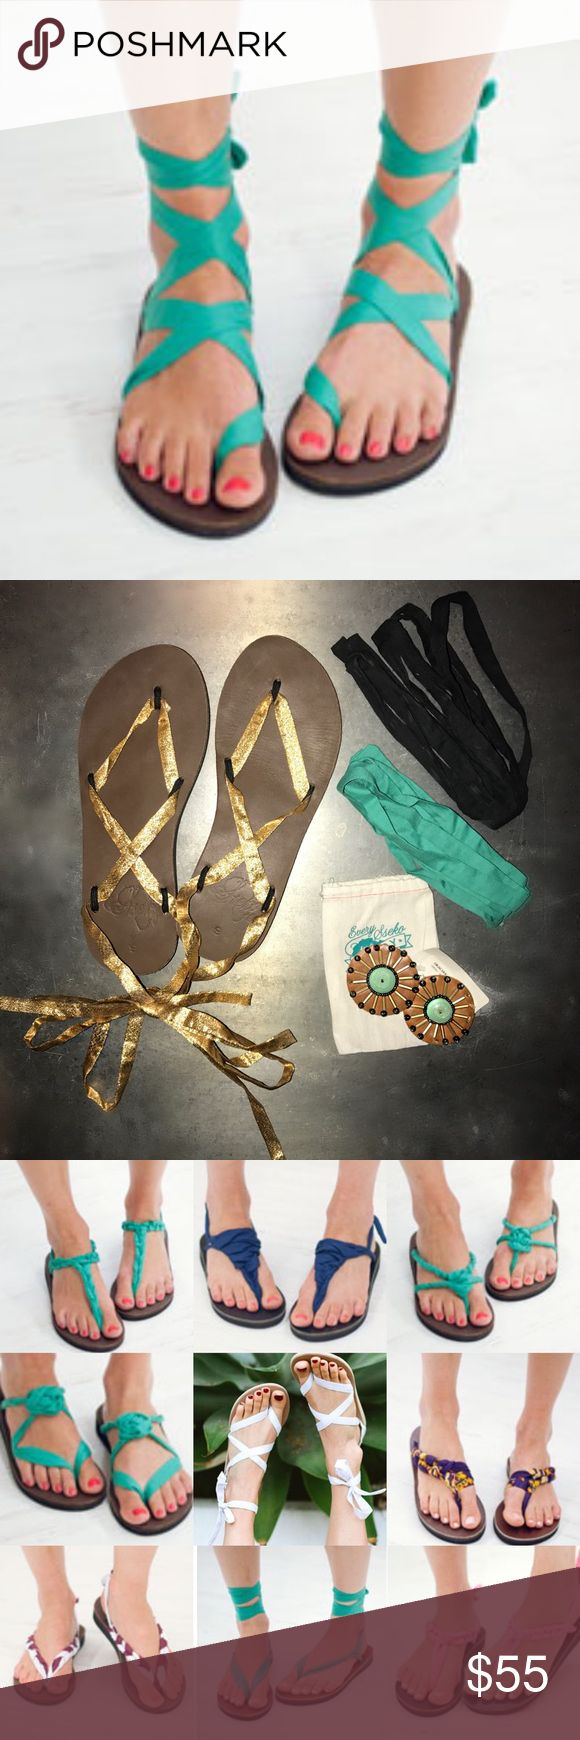 Brown Leather Sandals with Accessories 2nd picture is what's for sale-the sandals, 3 pairs of ribbons (black, gold, and teal) and a pair of circle accessories(missing a few beads).  The other photos are examples of the different ways they can be worn and so many videos on how to tie them:) Handcrafted in Uganda, Sseko sandals are made of genuine leather for long-lasting durability and all-day comfort. Sseko Shoes Sandals